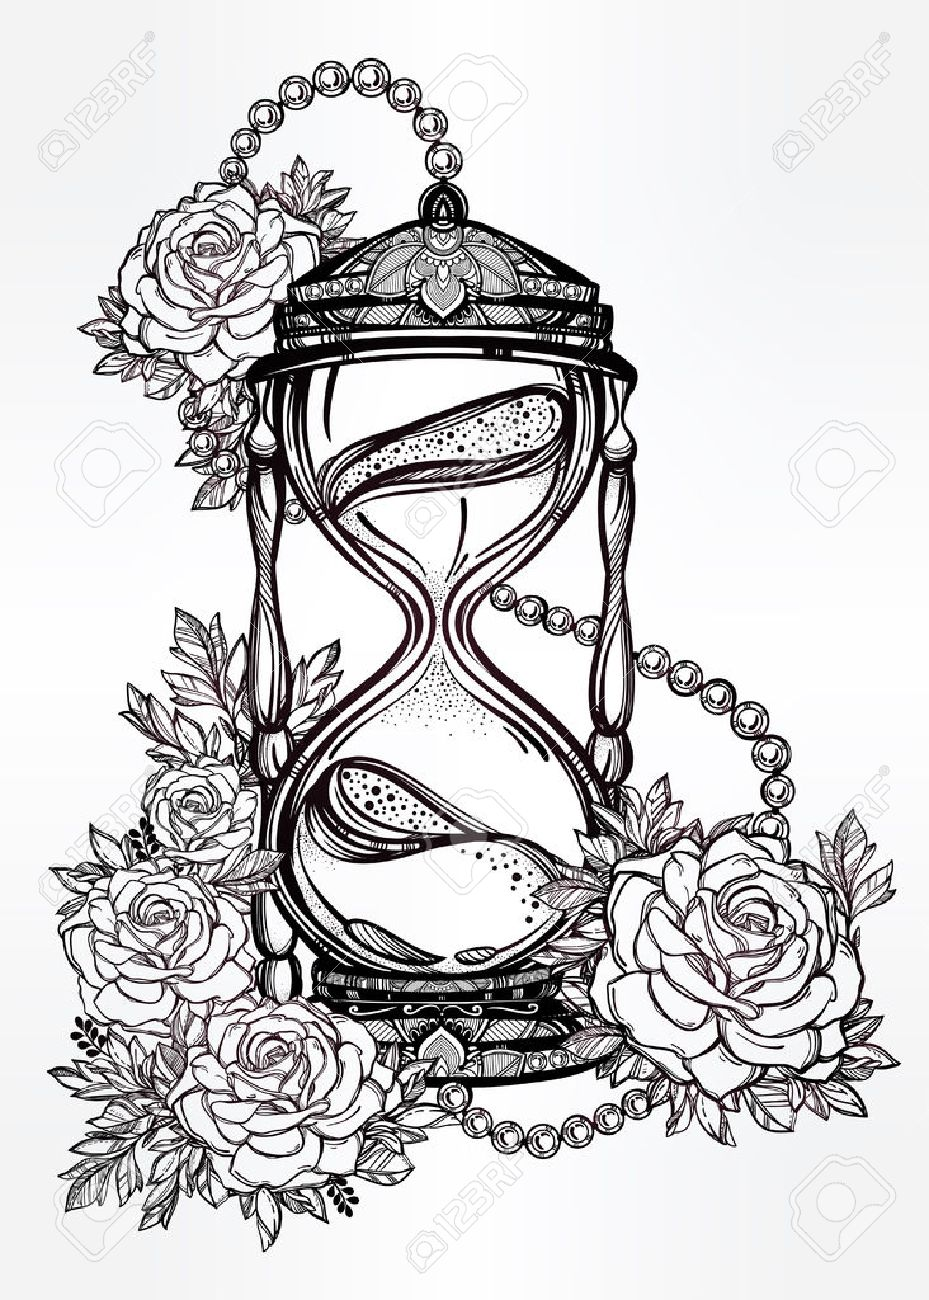 Hand drawn romantic beautiful drawing of a hourglass with roses. Vector illustration isolated. Tattoo design, mystic time symbol for your use. Stock Vector - 48644980